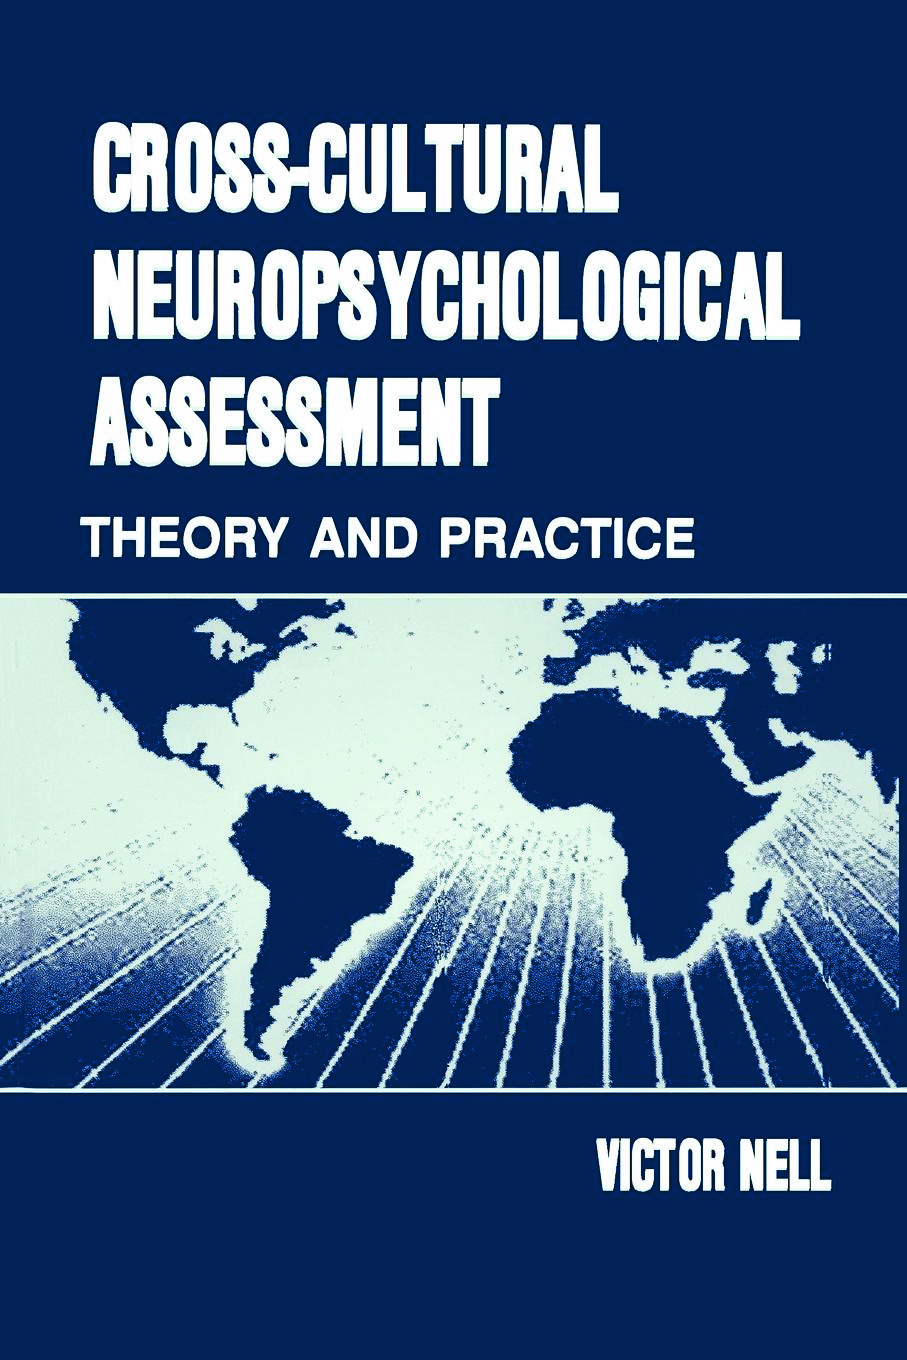 Cross-Cultural Neuropsychological Assessment: Theory and Practice (Paperback) book cover